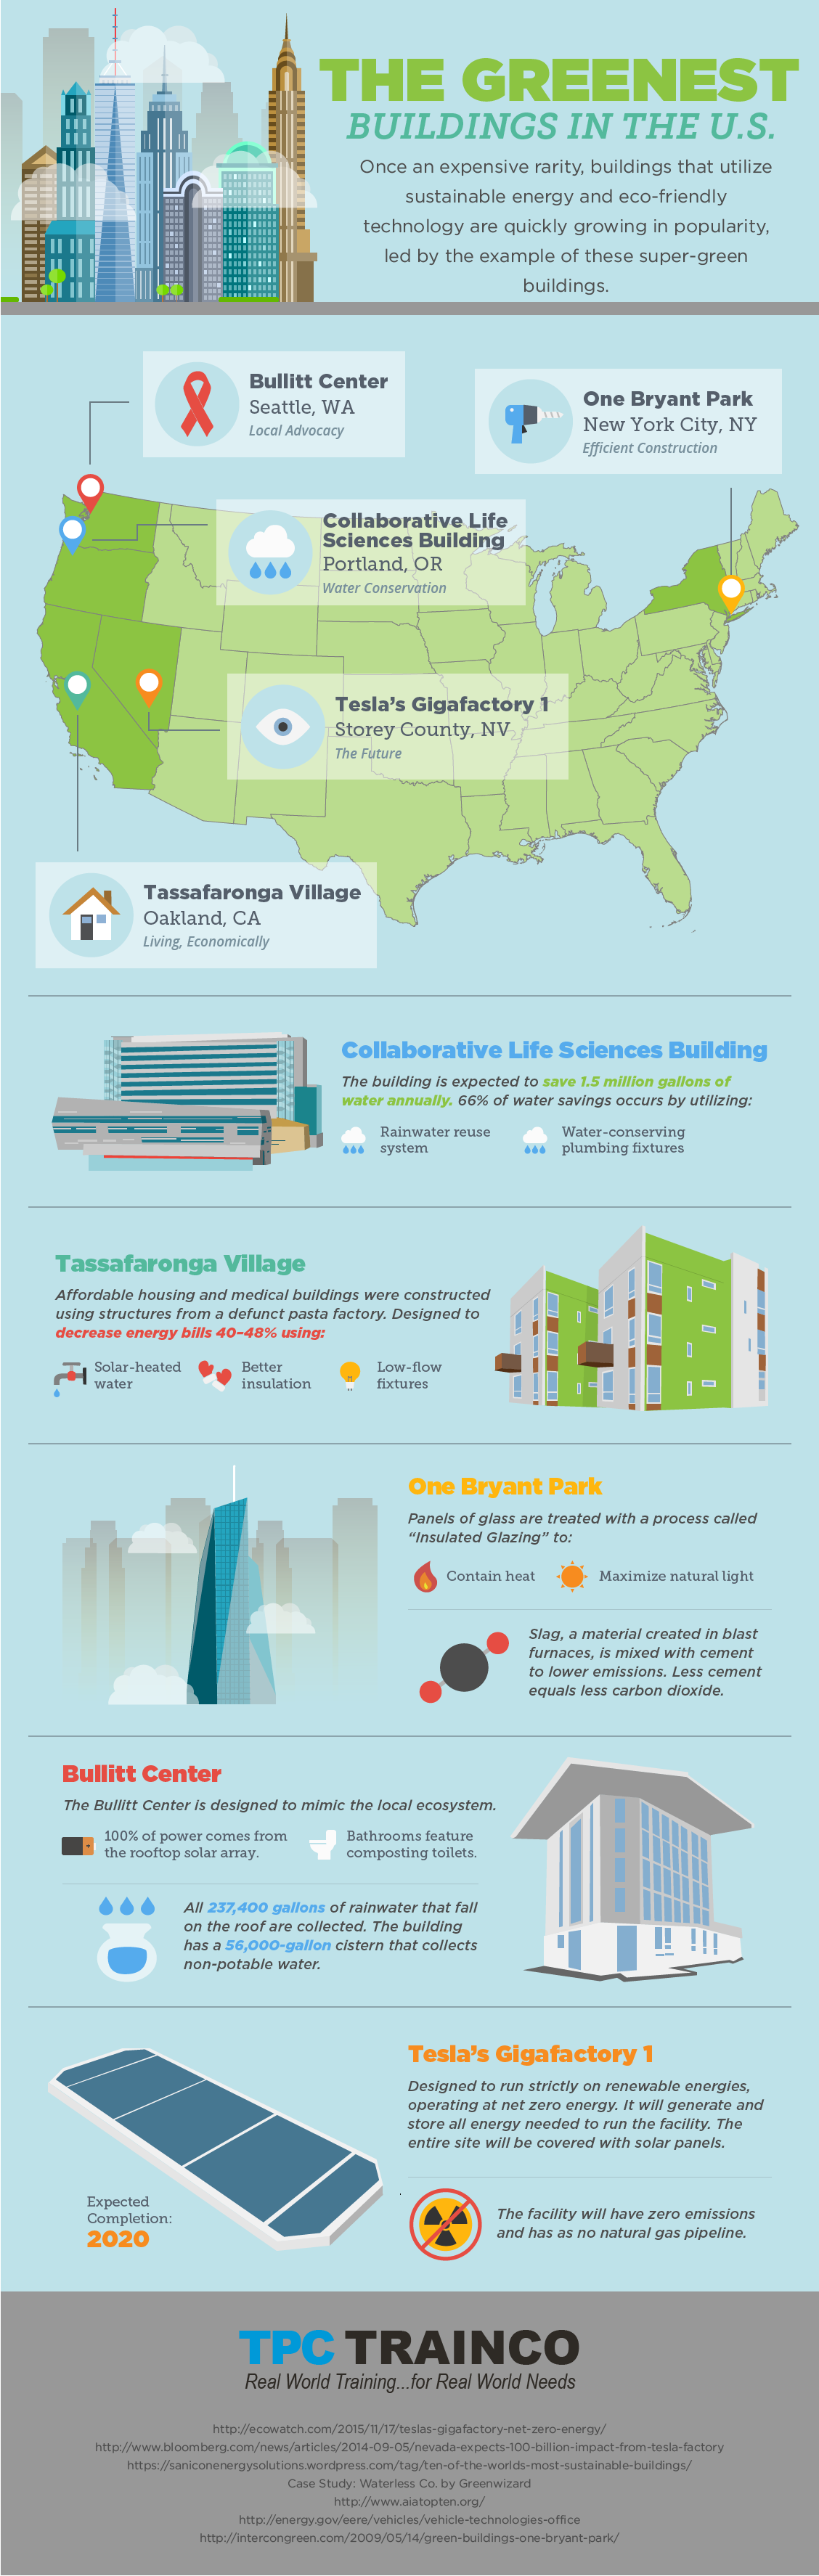 The Greenest Buildings In The U.S. Infographic